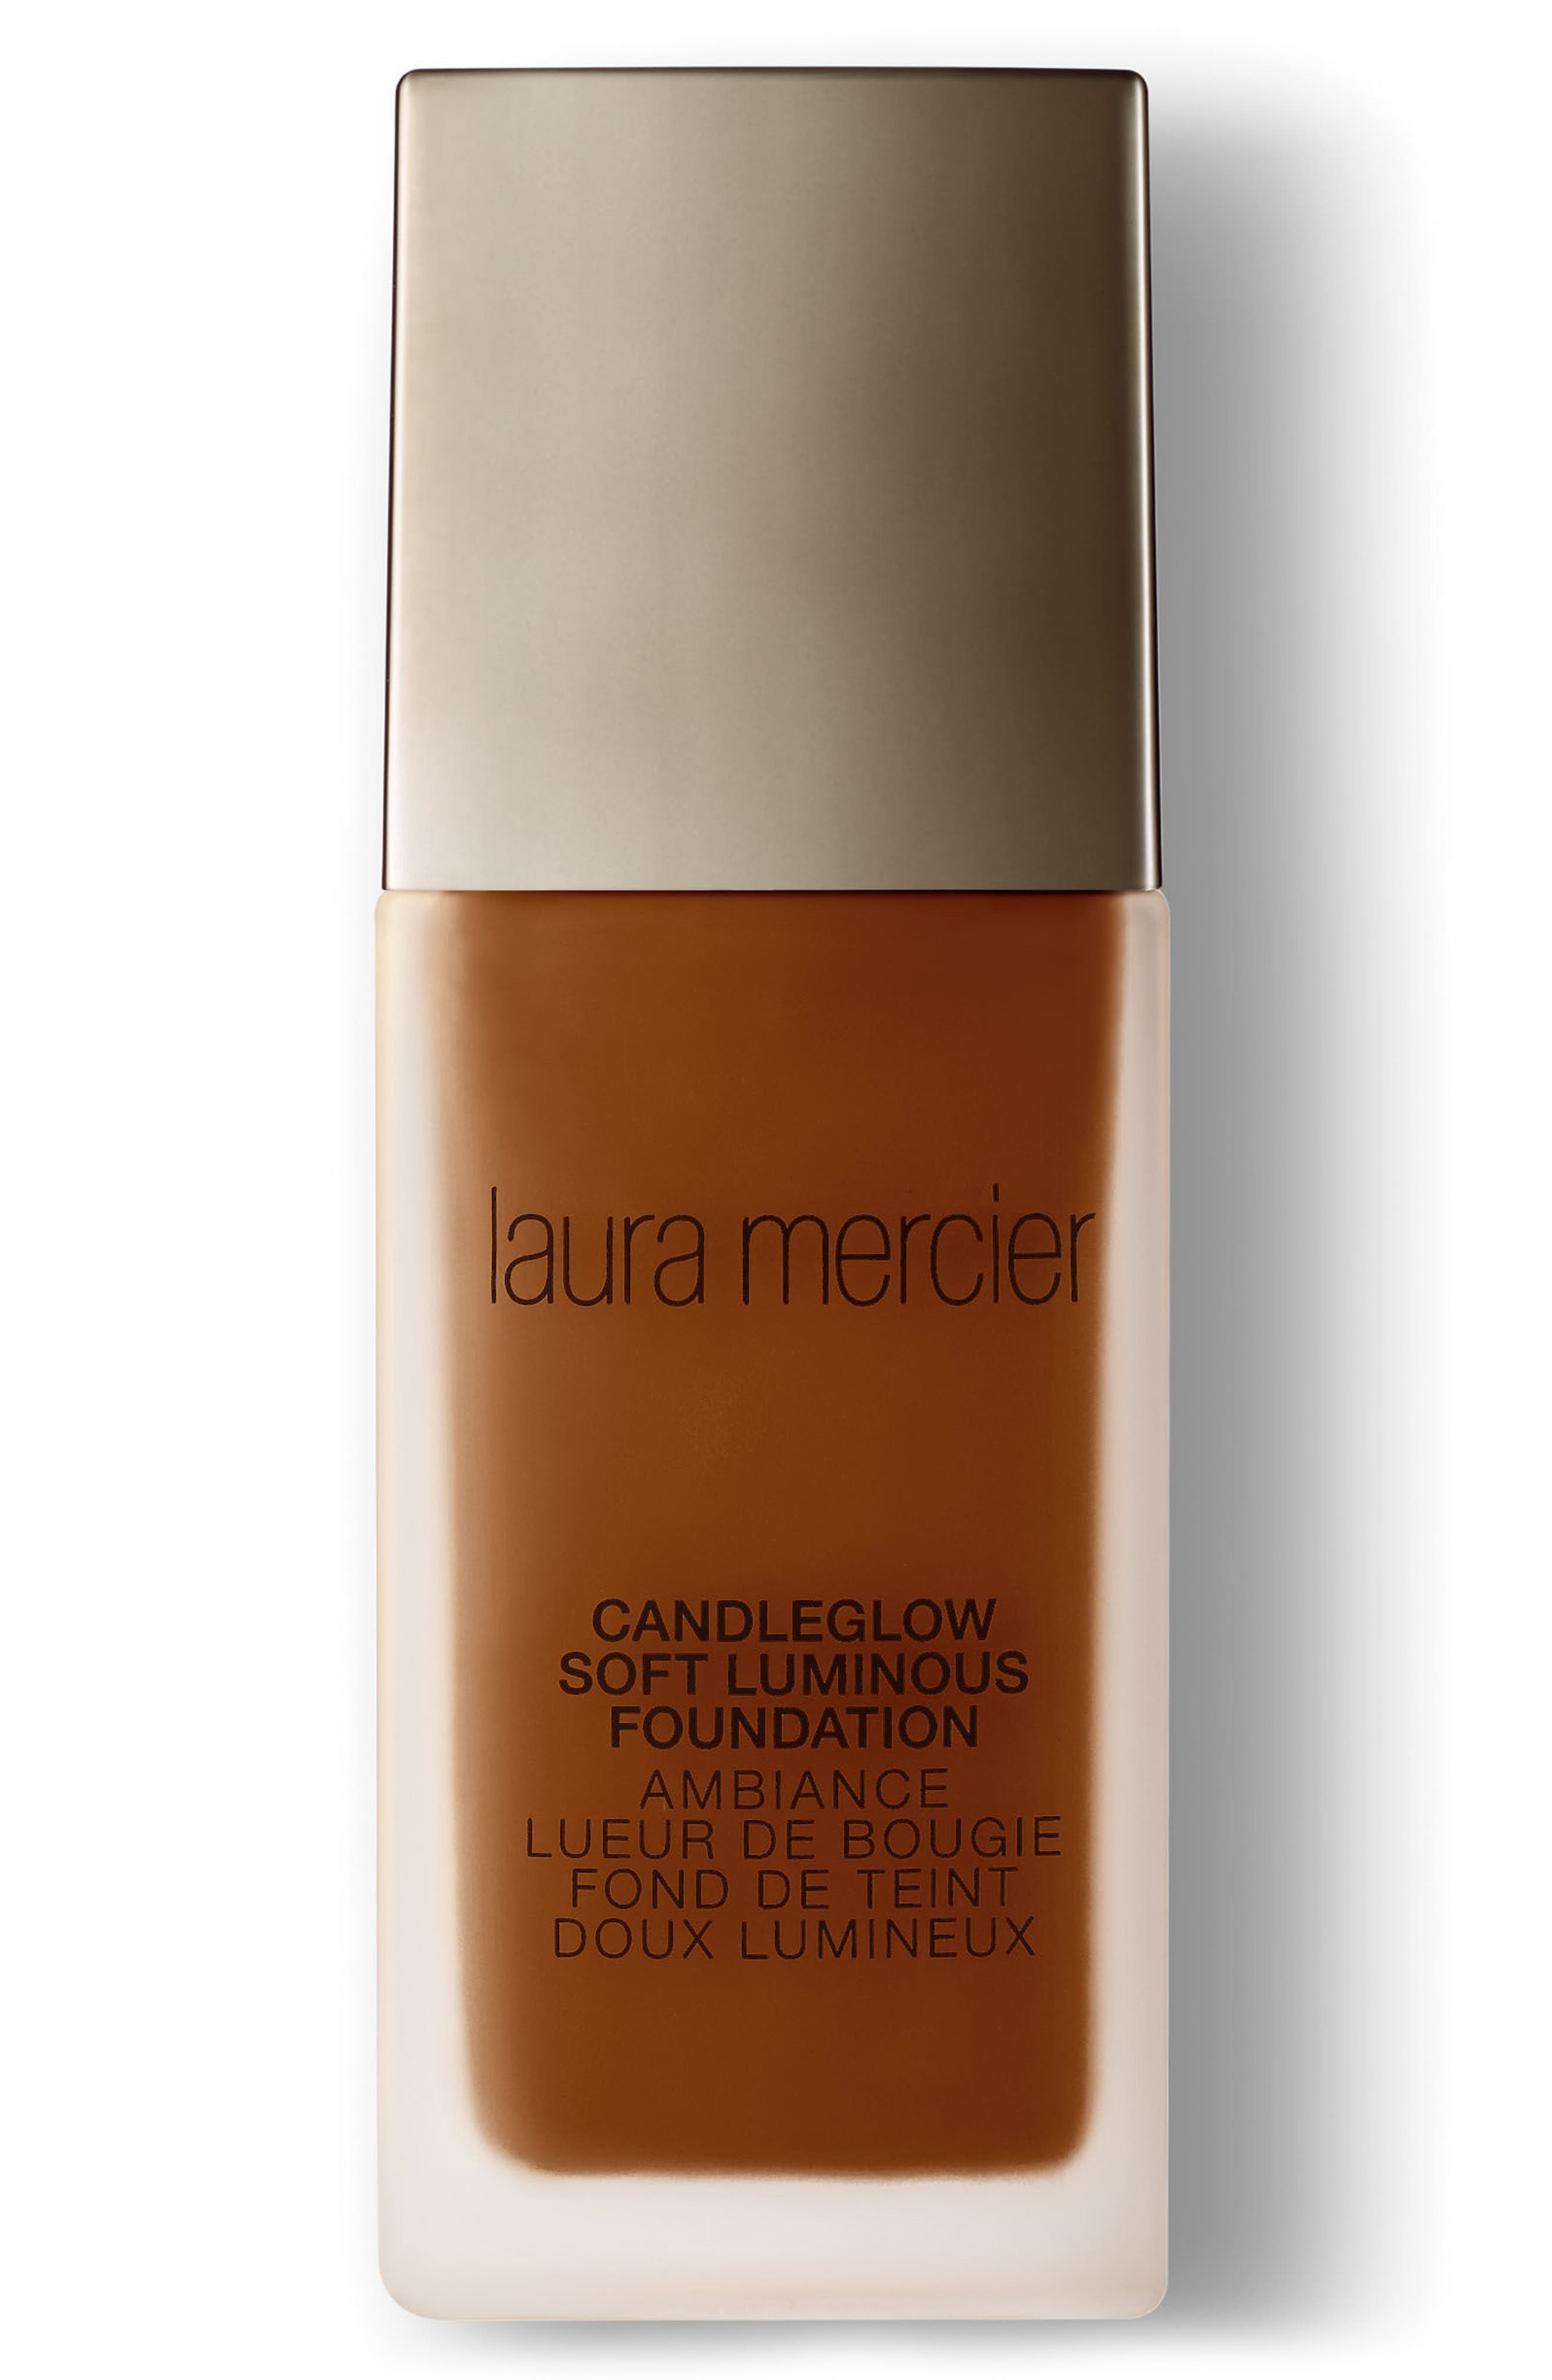 Candleglow Soft Luminous Foundation,                         Main,                         color, 6N1 TRUFFLE